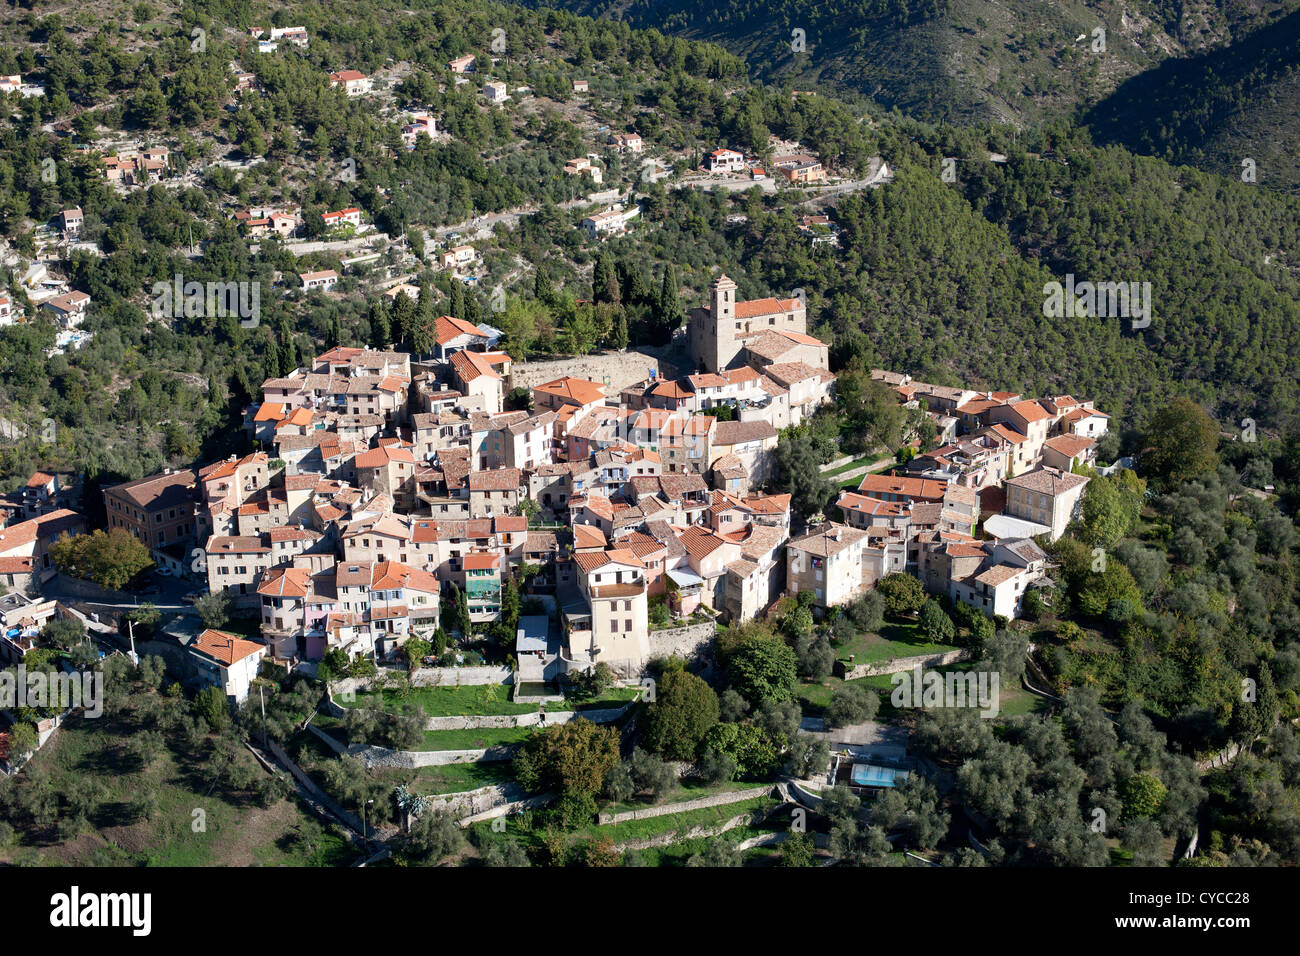 PERCHED MEDIEVAL VILLAGE (aerial view). Village of Coaraze on the French Riviera's backcountry. - Stock Image